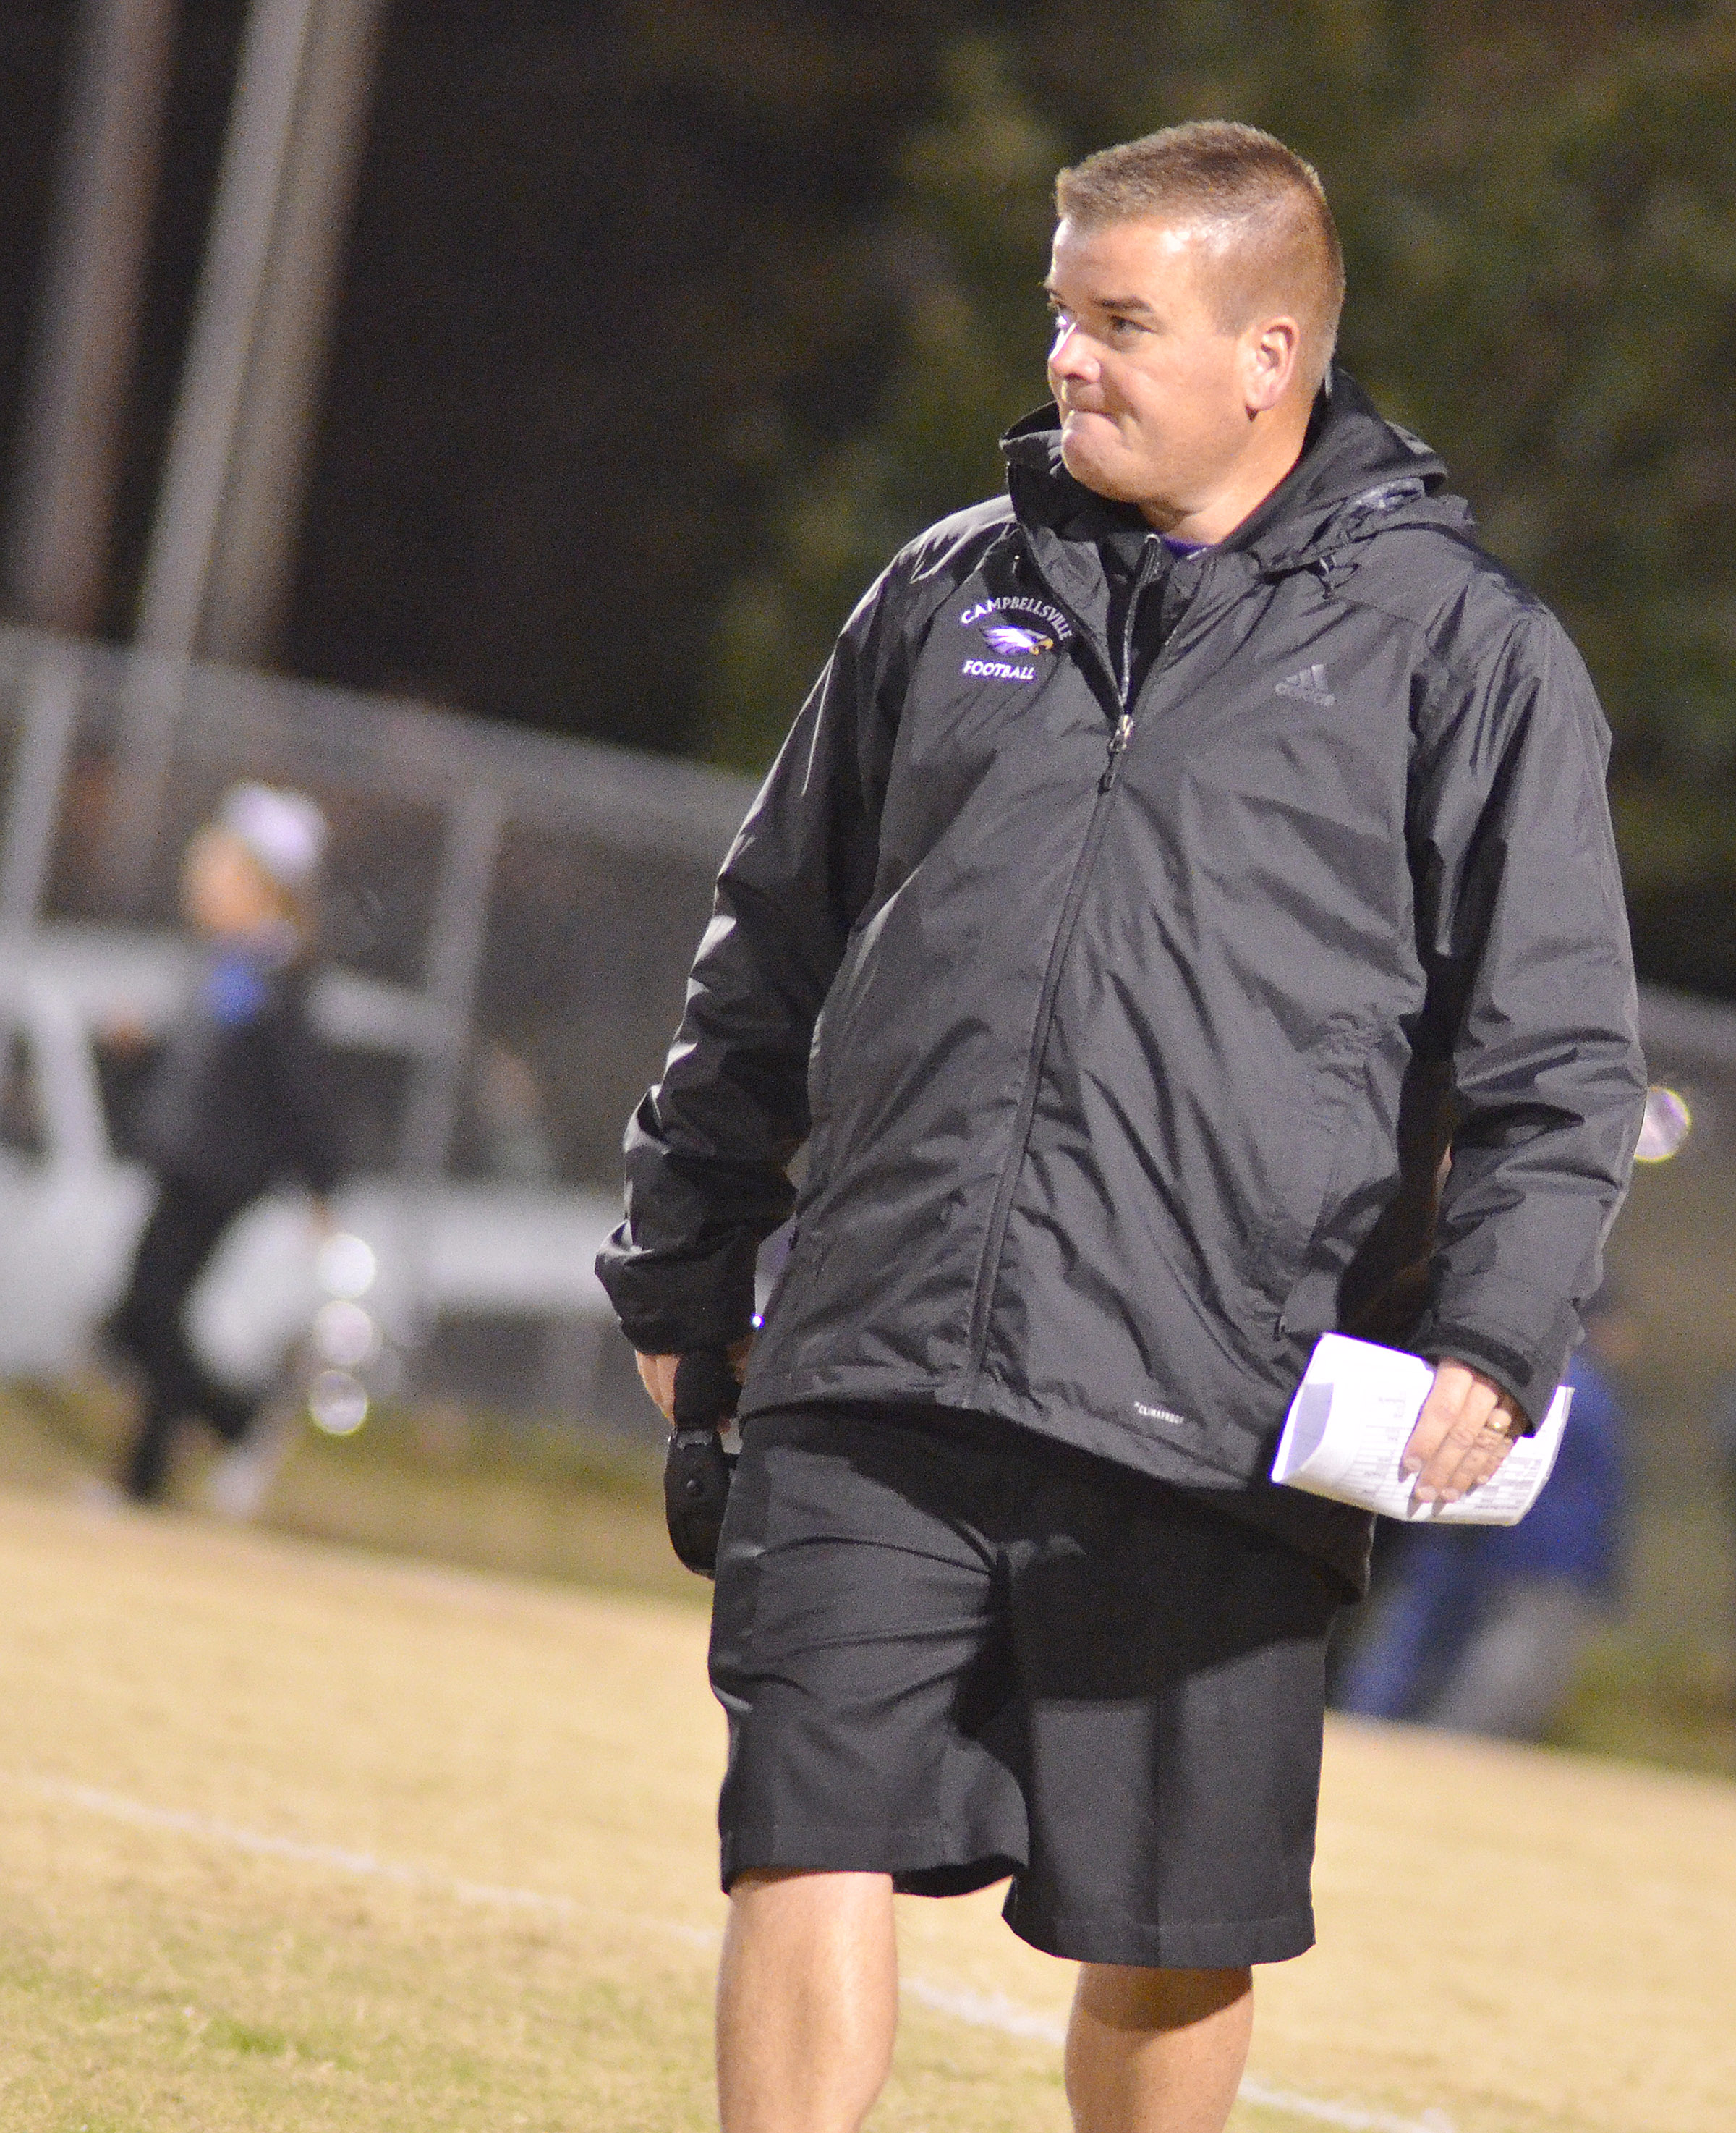 For the second year in a row, CHS head football coach Dale Estes was named Coach of the Year for Class A District 2.